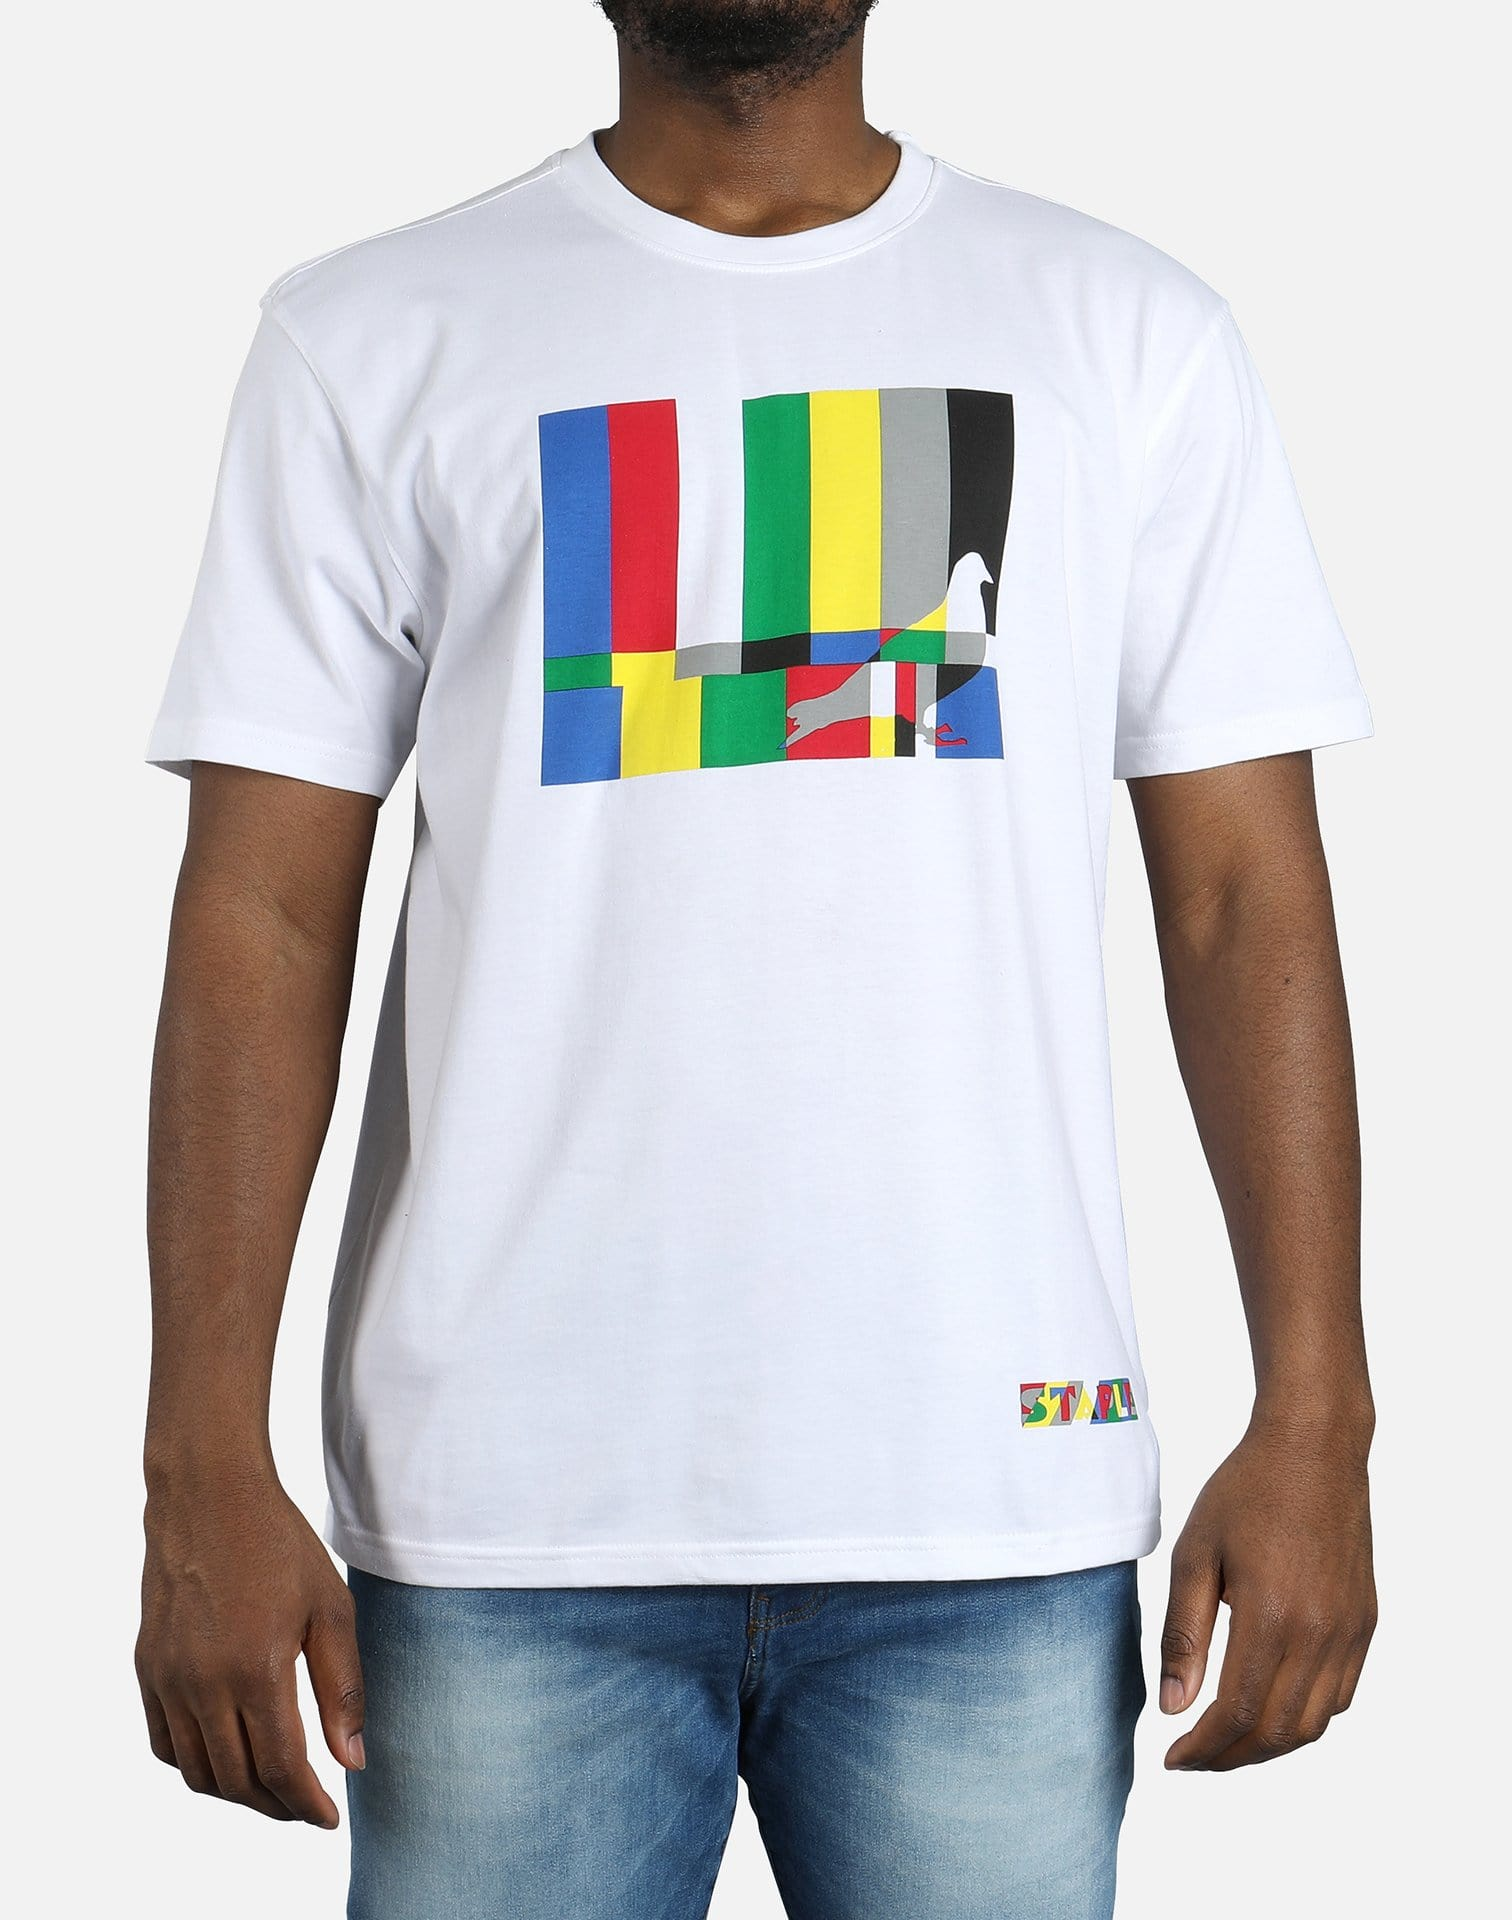 Staple Color Bars Short Sleeve Tee